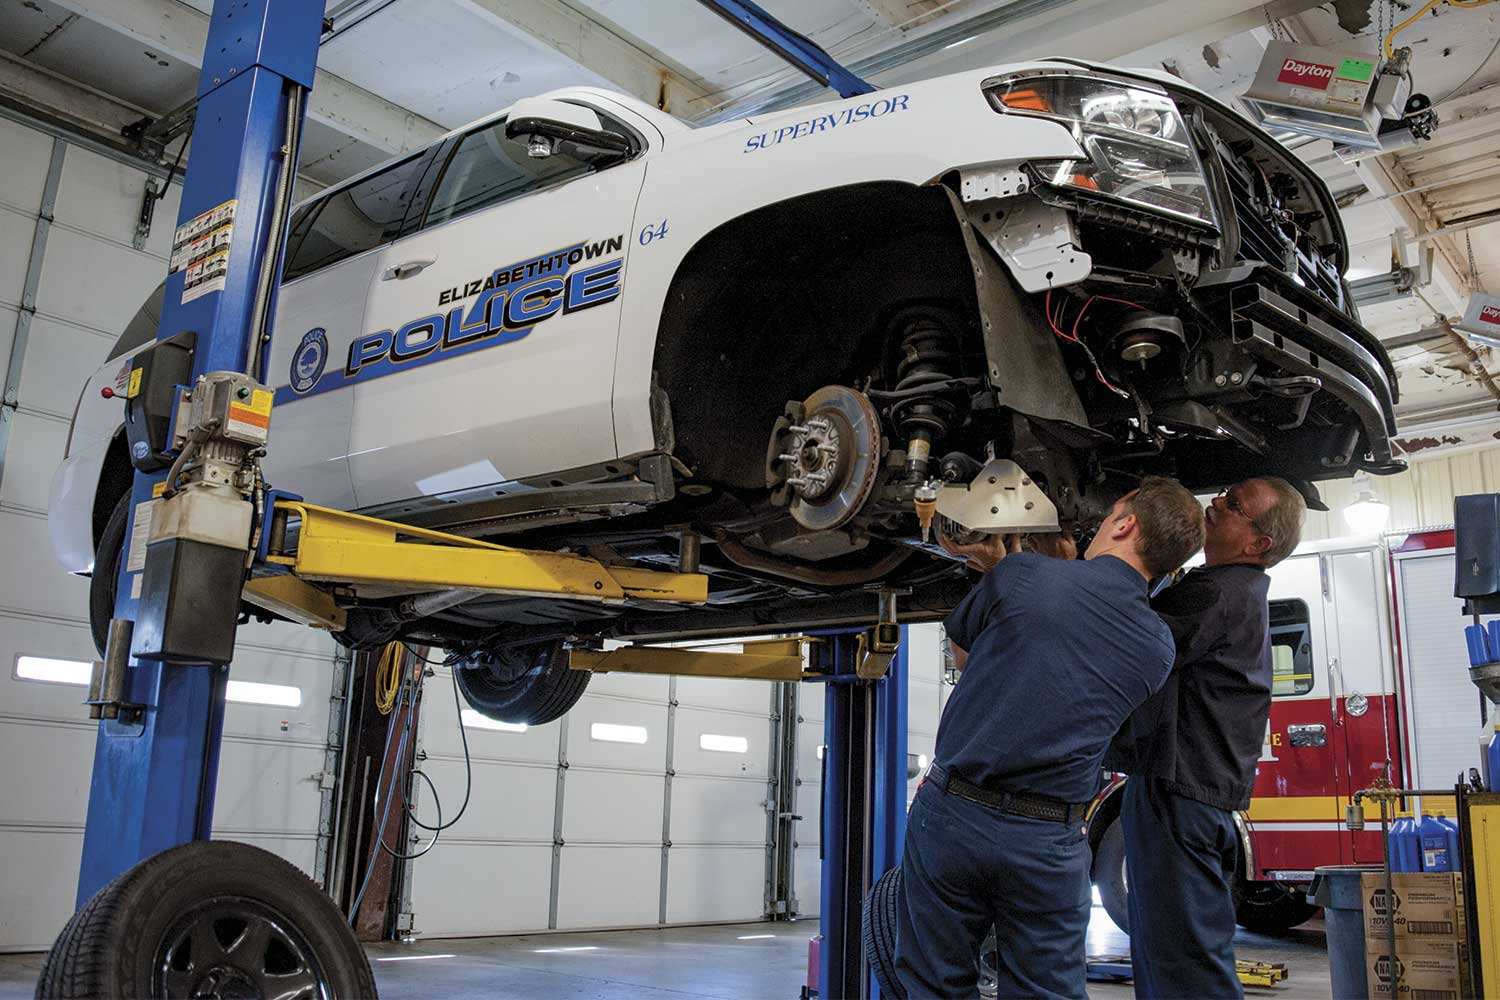 Unlike most Kentucky law enforcement agencies, Elizabethtown has its own Public Safety Garage inside the police department. PSG staff are responsible for vehicle maintenance, striping and repairing all police and fire vehicles. (Photo by Jim Robertson)